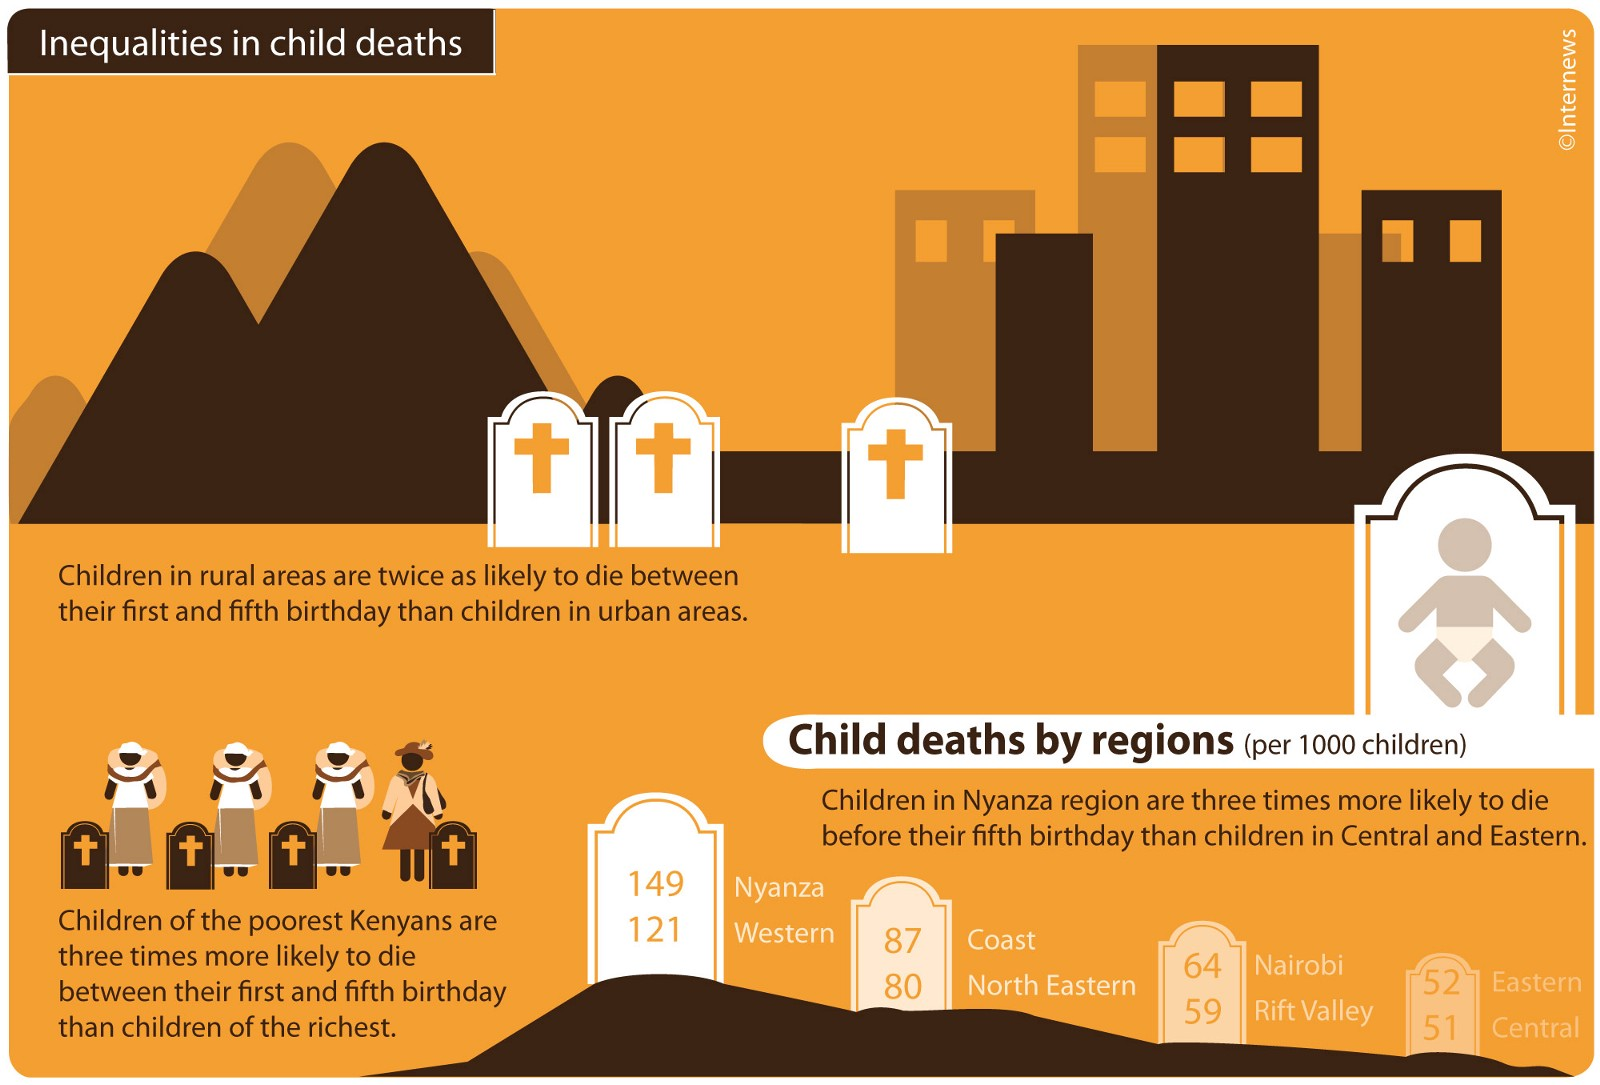 Infographic showing Inequalities in Child Deaths